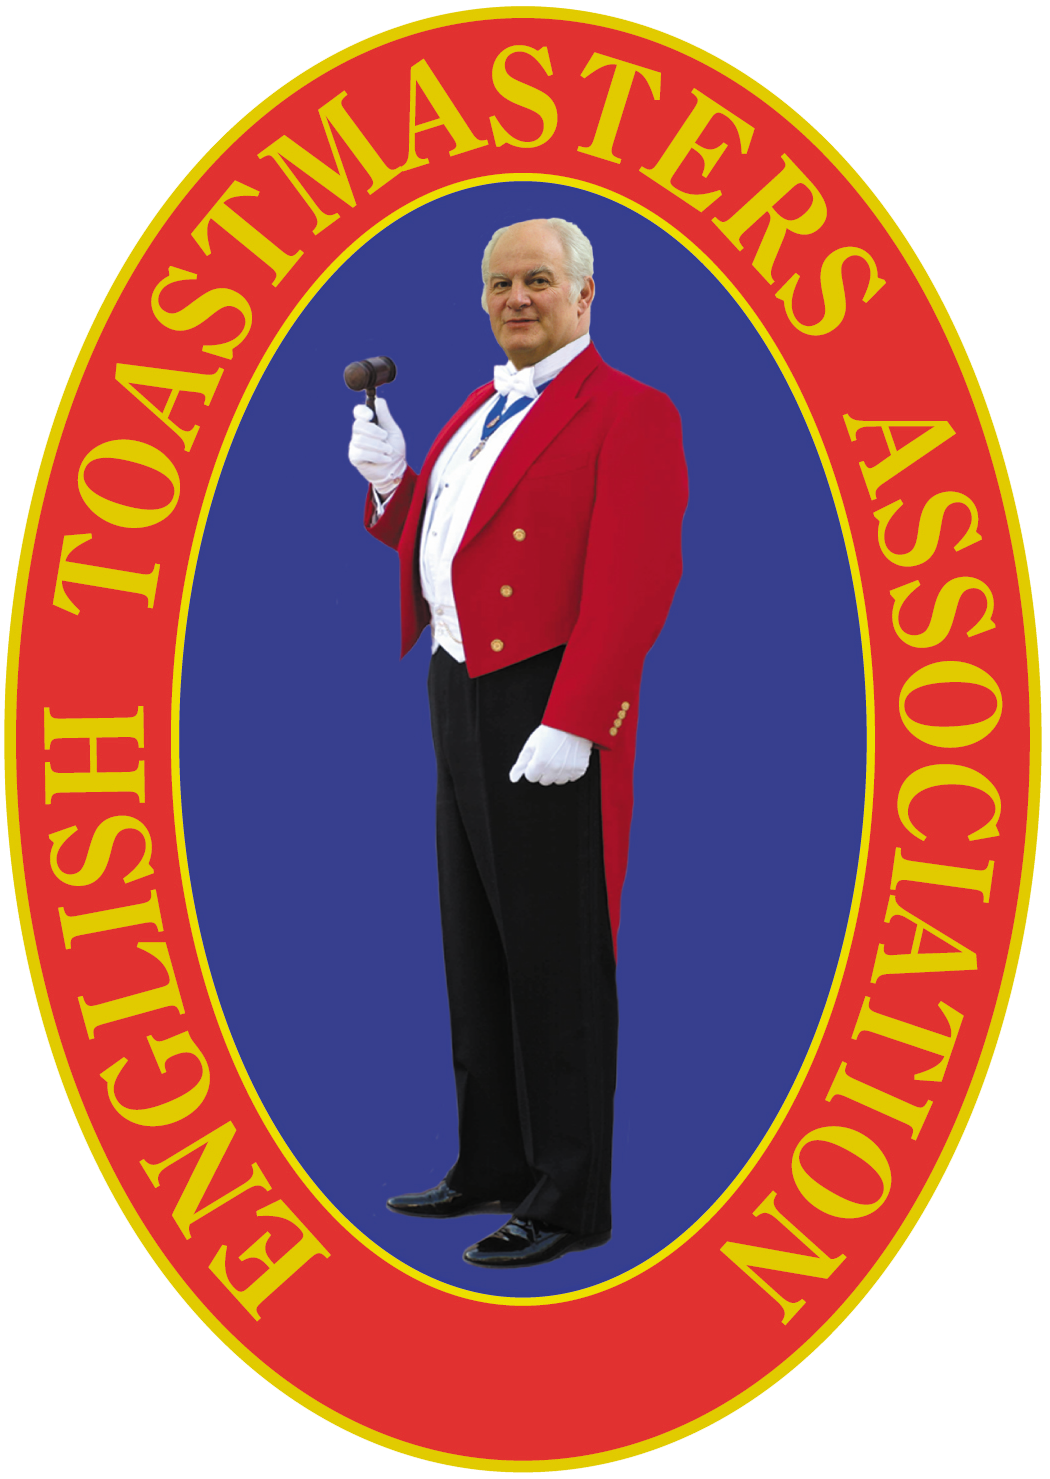 Toastmaster Logo for English Toastmasters Association